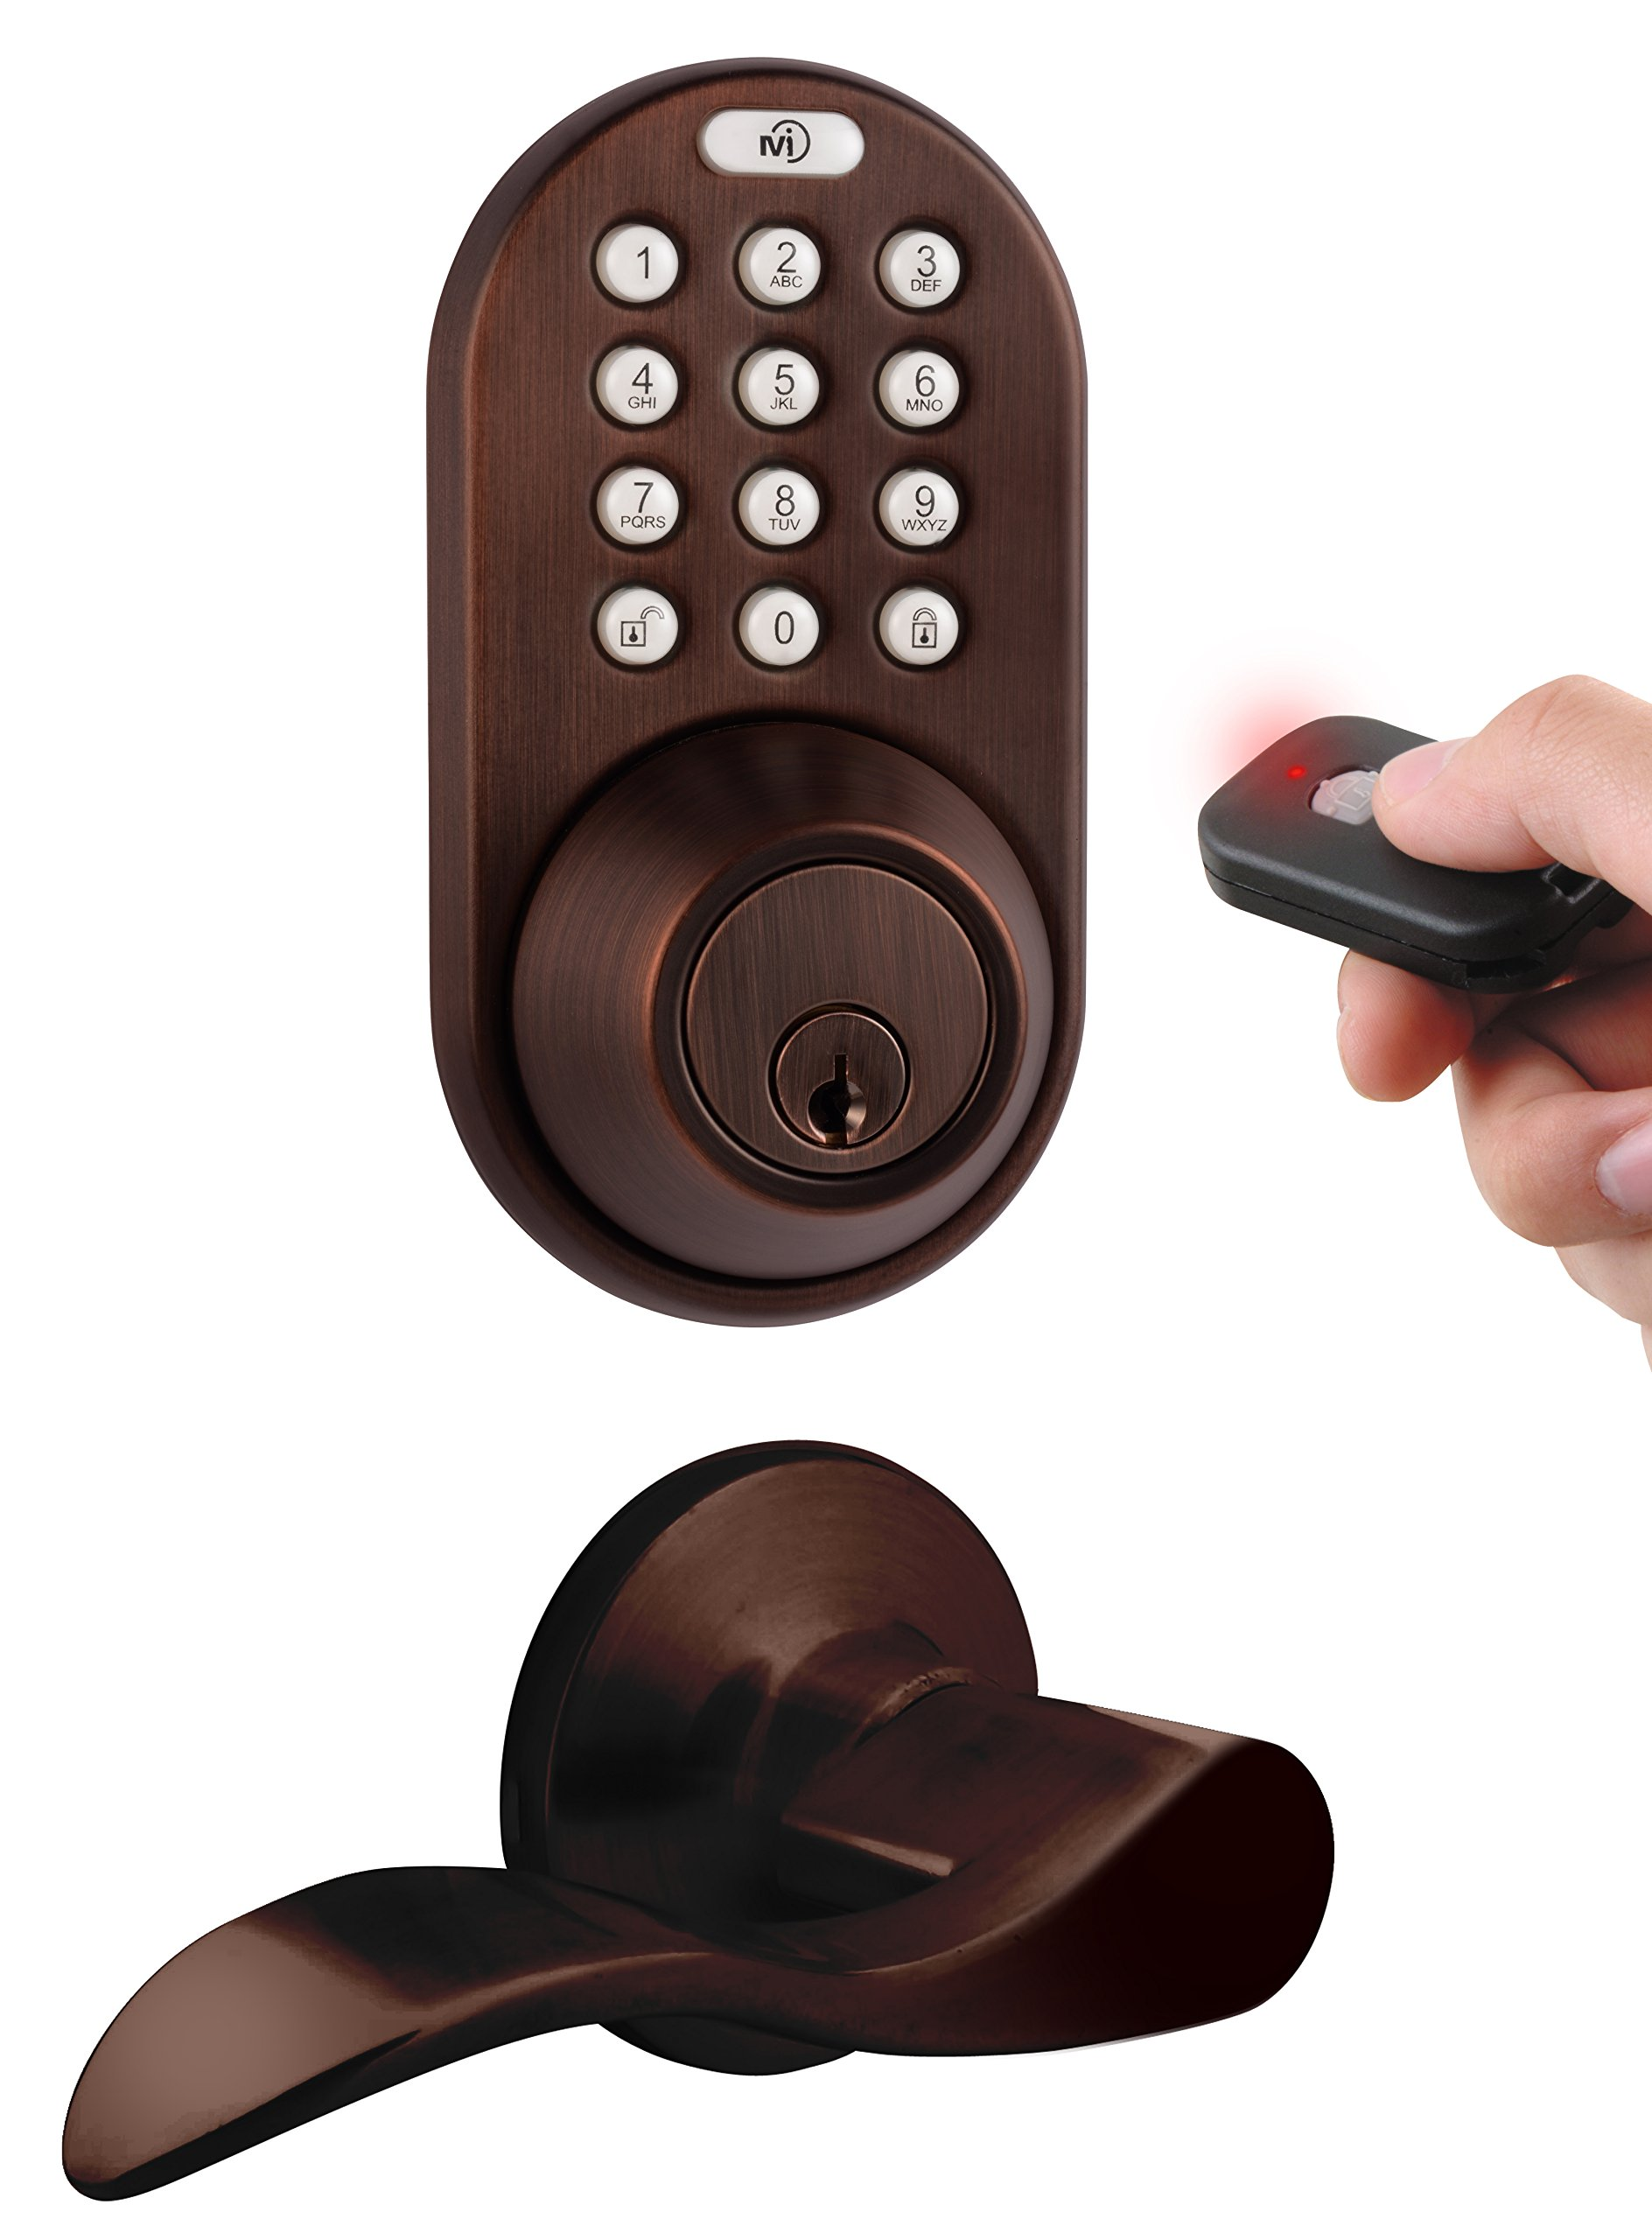 MiLocks XFL-02OB Digital Deadbolt Door Lock and Passage Lever Handle Combo with Keyless Entry via Remote Control and Keypad Code for Exterior Doors, Oil Rubbed Bronze